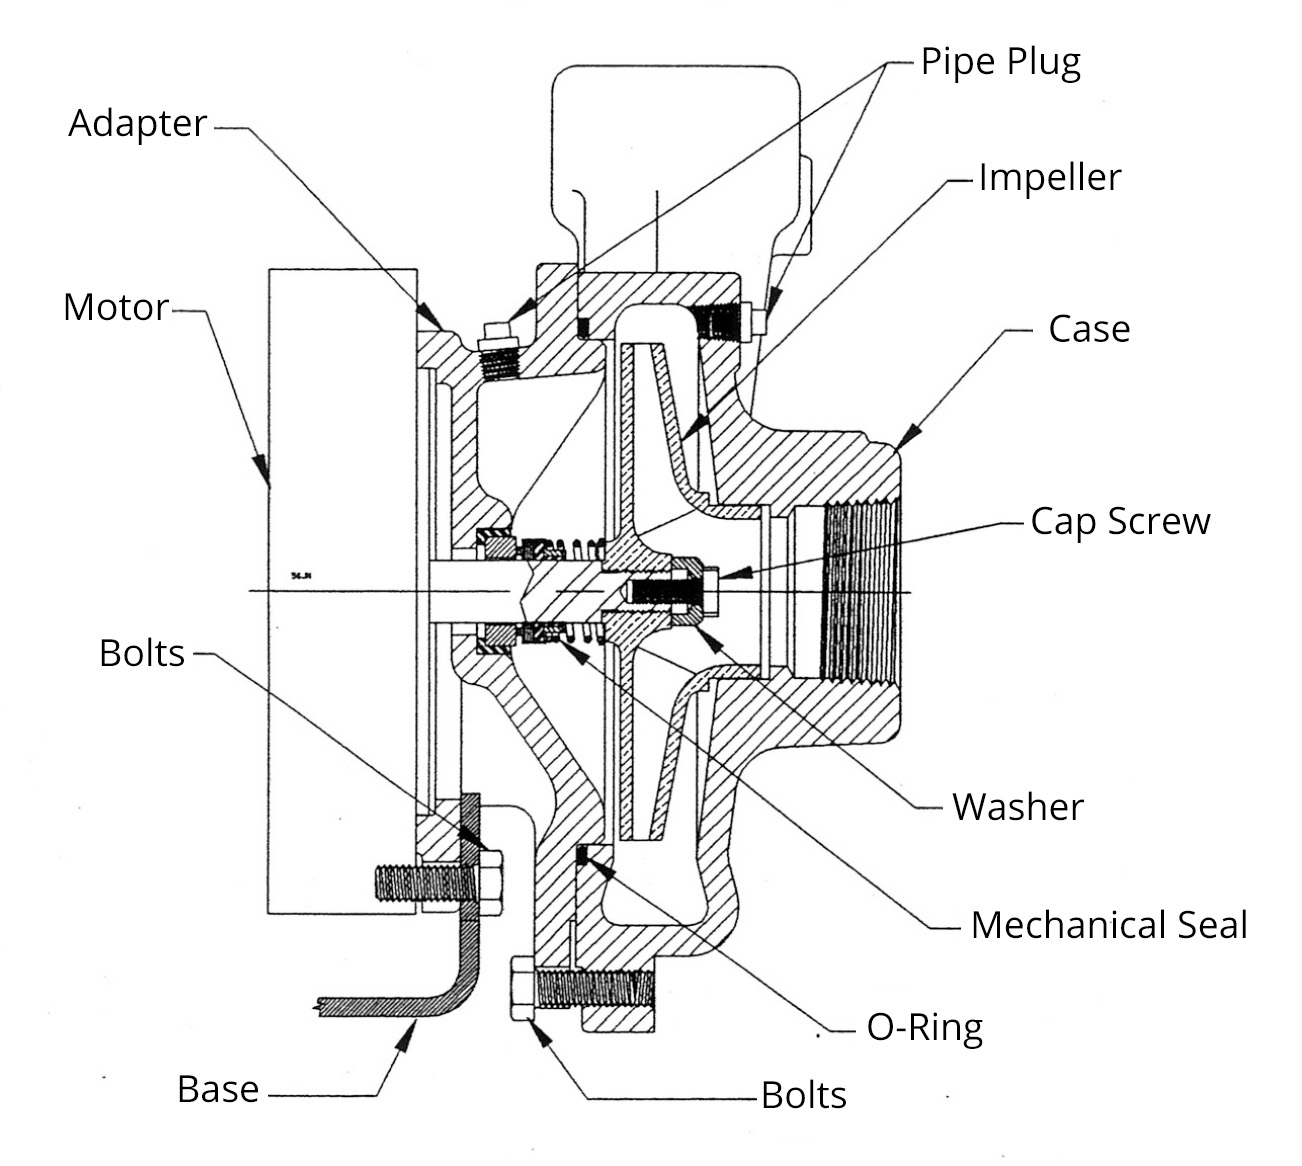 Mepco Centrifugal Pumps